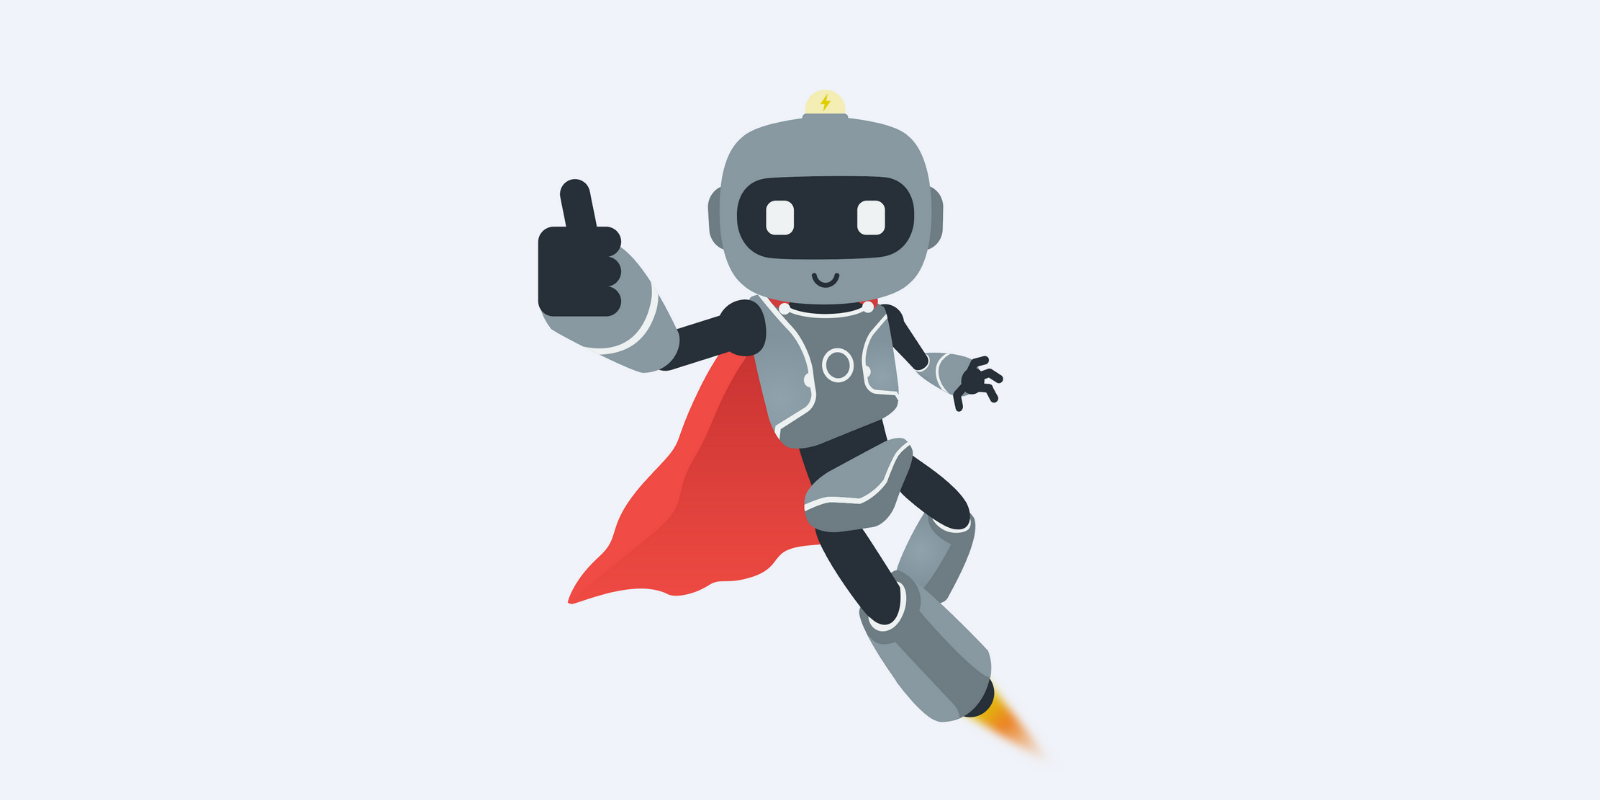 Introducing SuperBots - Chatbot apps